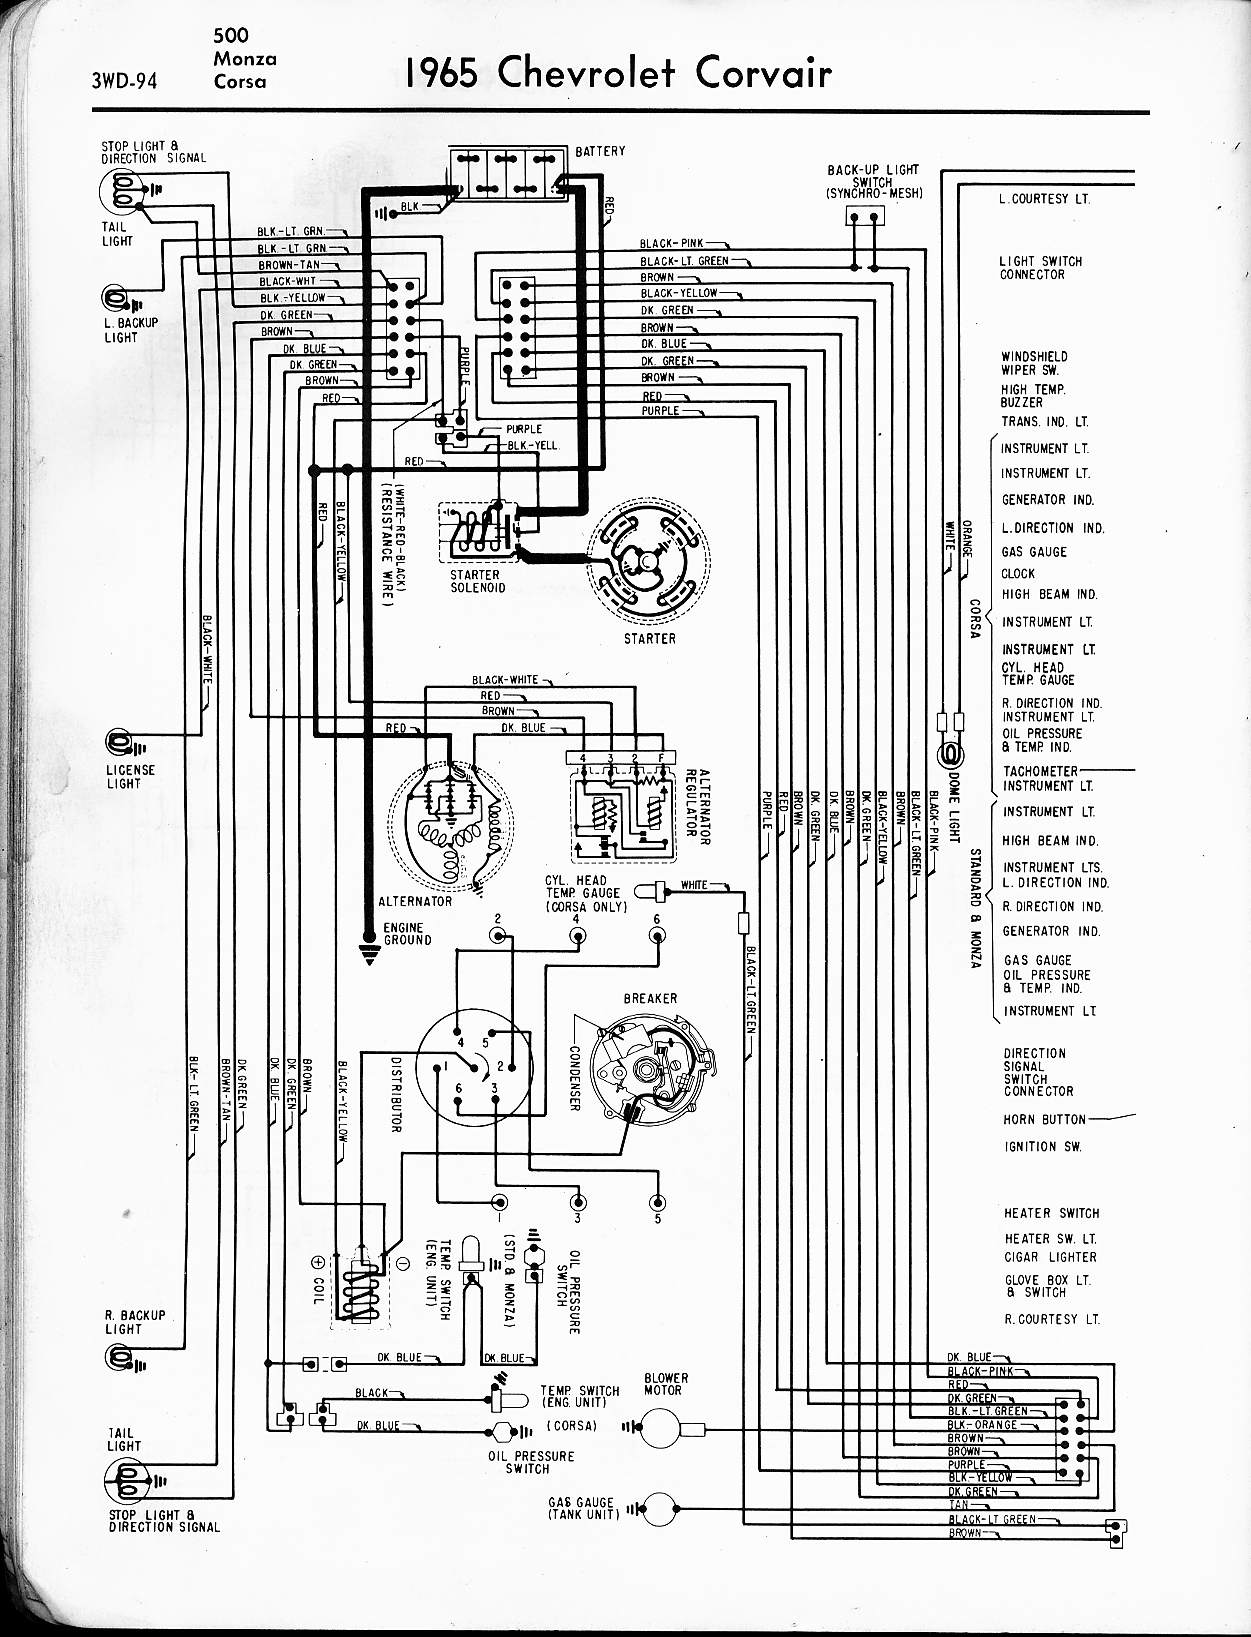 corsa c towbar wiring diagram 1965 mustang headlight switch vectra diagrams worksheet and fog light manual e books rh 84 iq radiothek de download